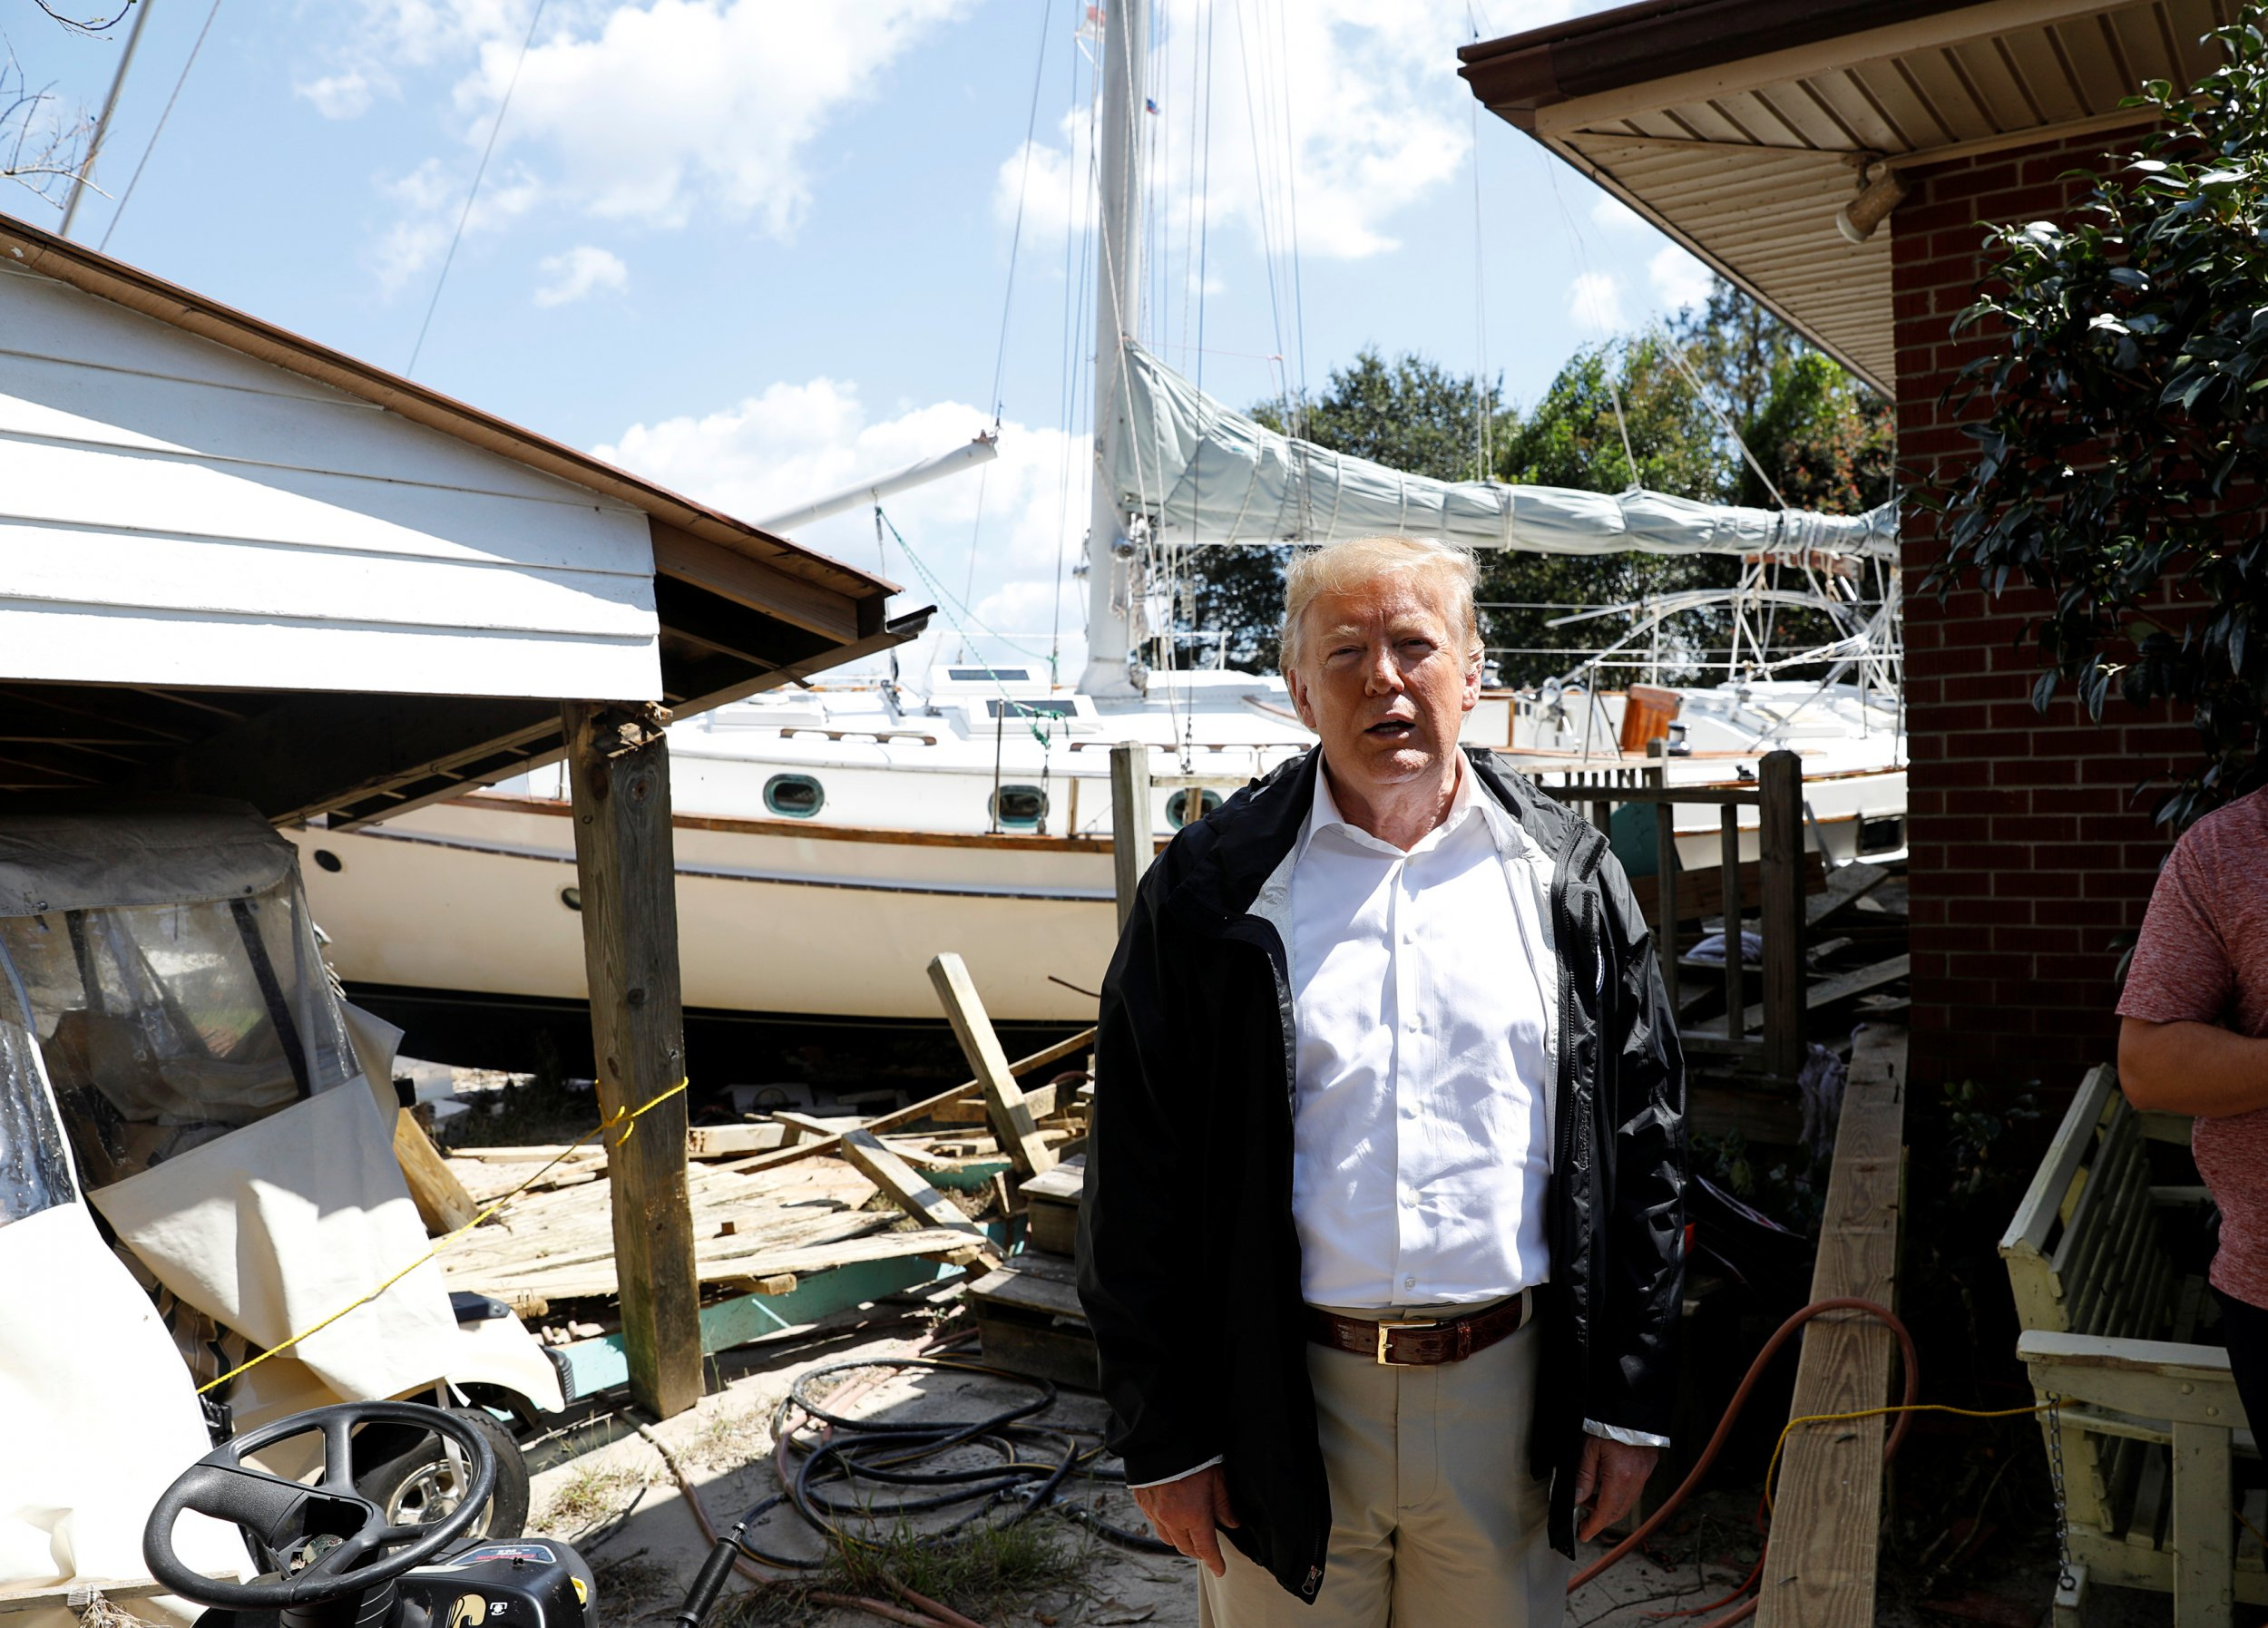 Donald Trump To Hurricane Florence Survivor At Least You Got A Nice